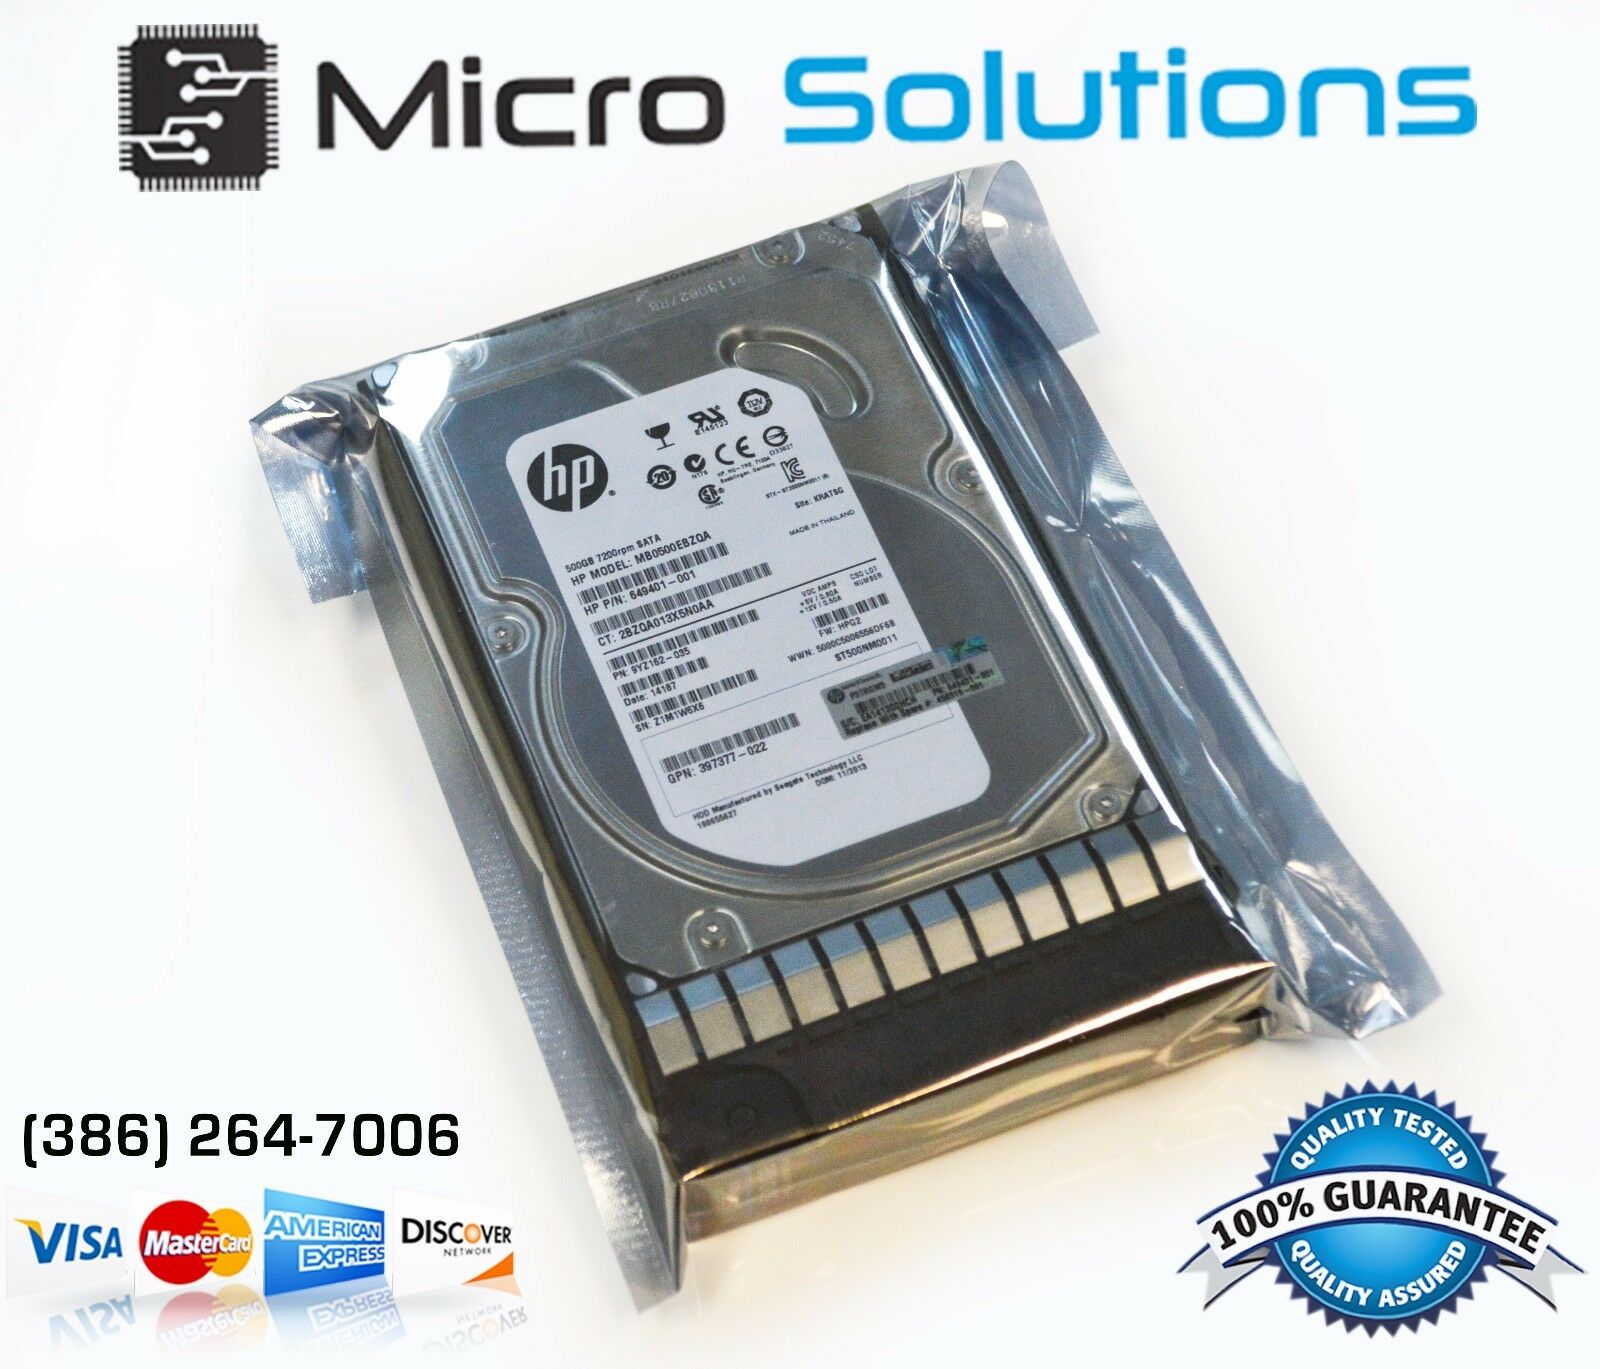 Hp 2tb 72k Rpm 35 507632 B21 508040 001 507631 003 Hard Drive Seagate Firecuda Inch Sshd 5 Years Warranty Hddssd For Pc Gaming 1 Of 1free Shipping